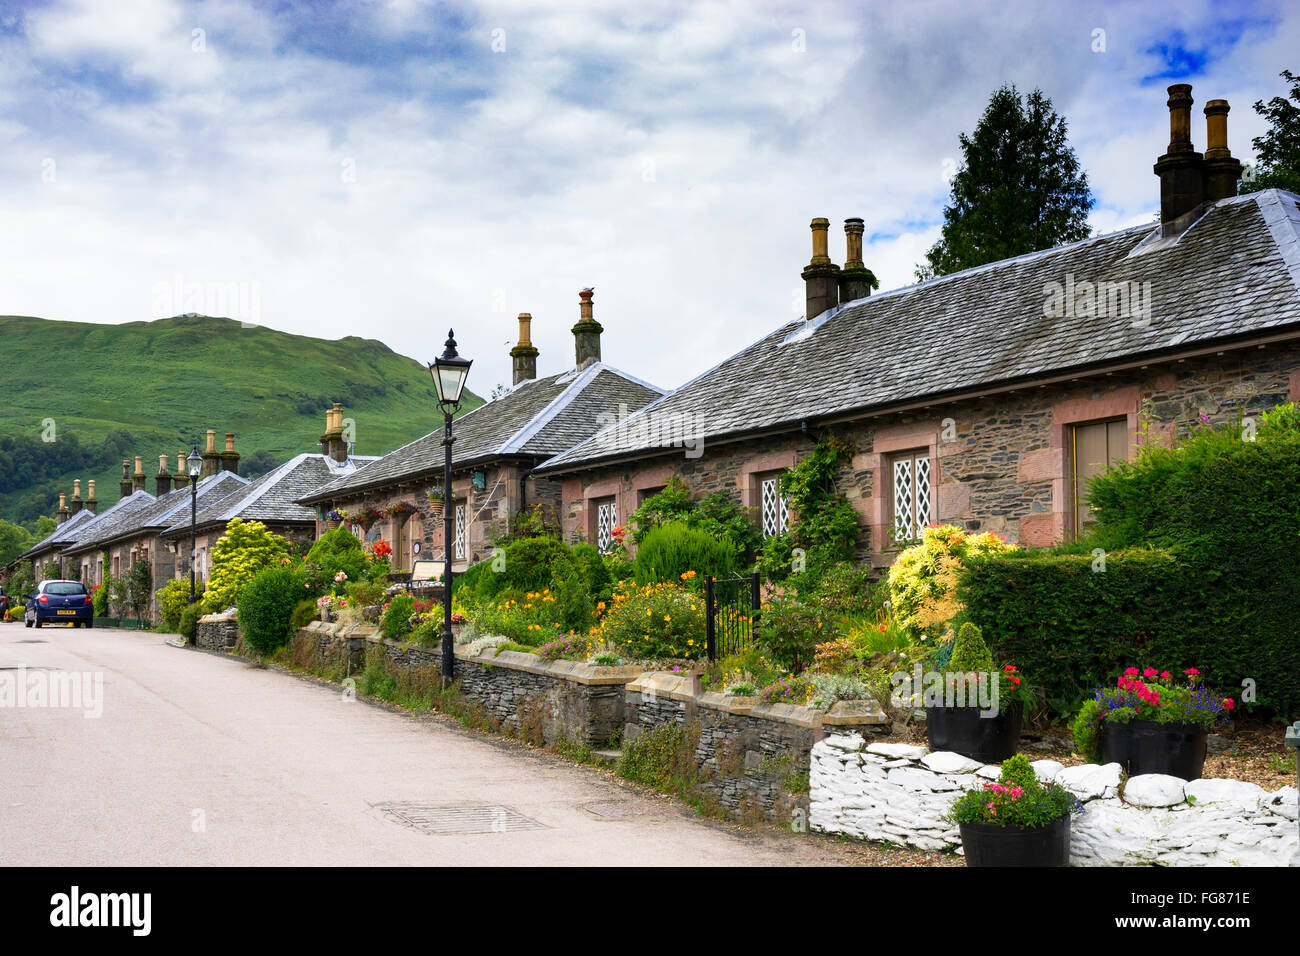 Old stone cottages in historic village of Luss in Argyll and Bute Scotland United Kingdom - Stock Image